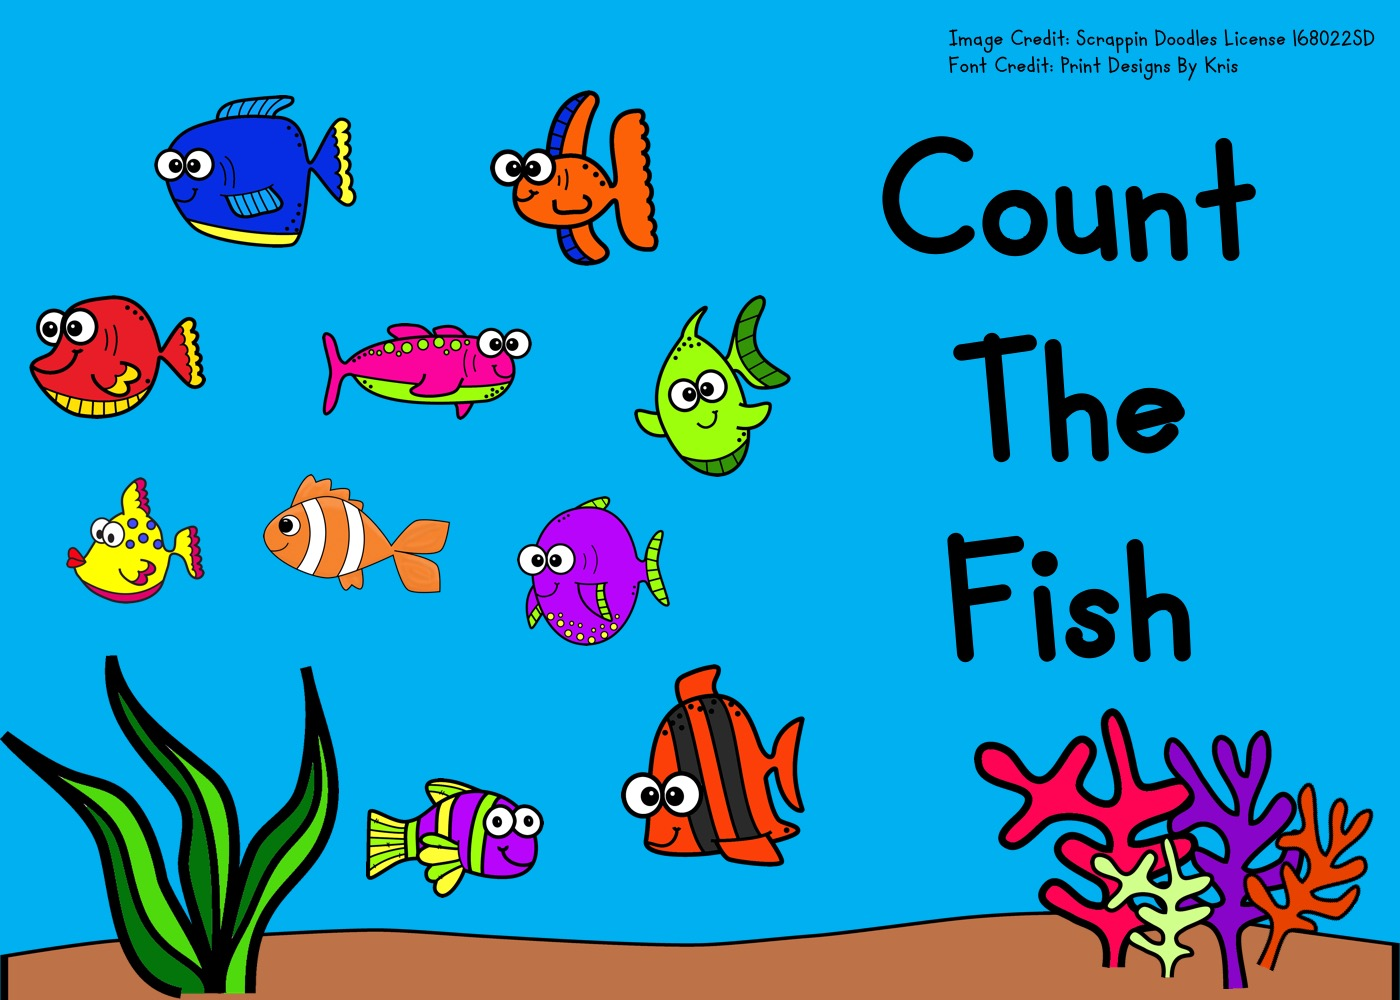 Count The Fish 1-10